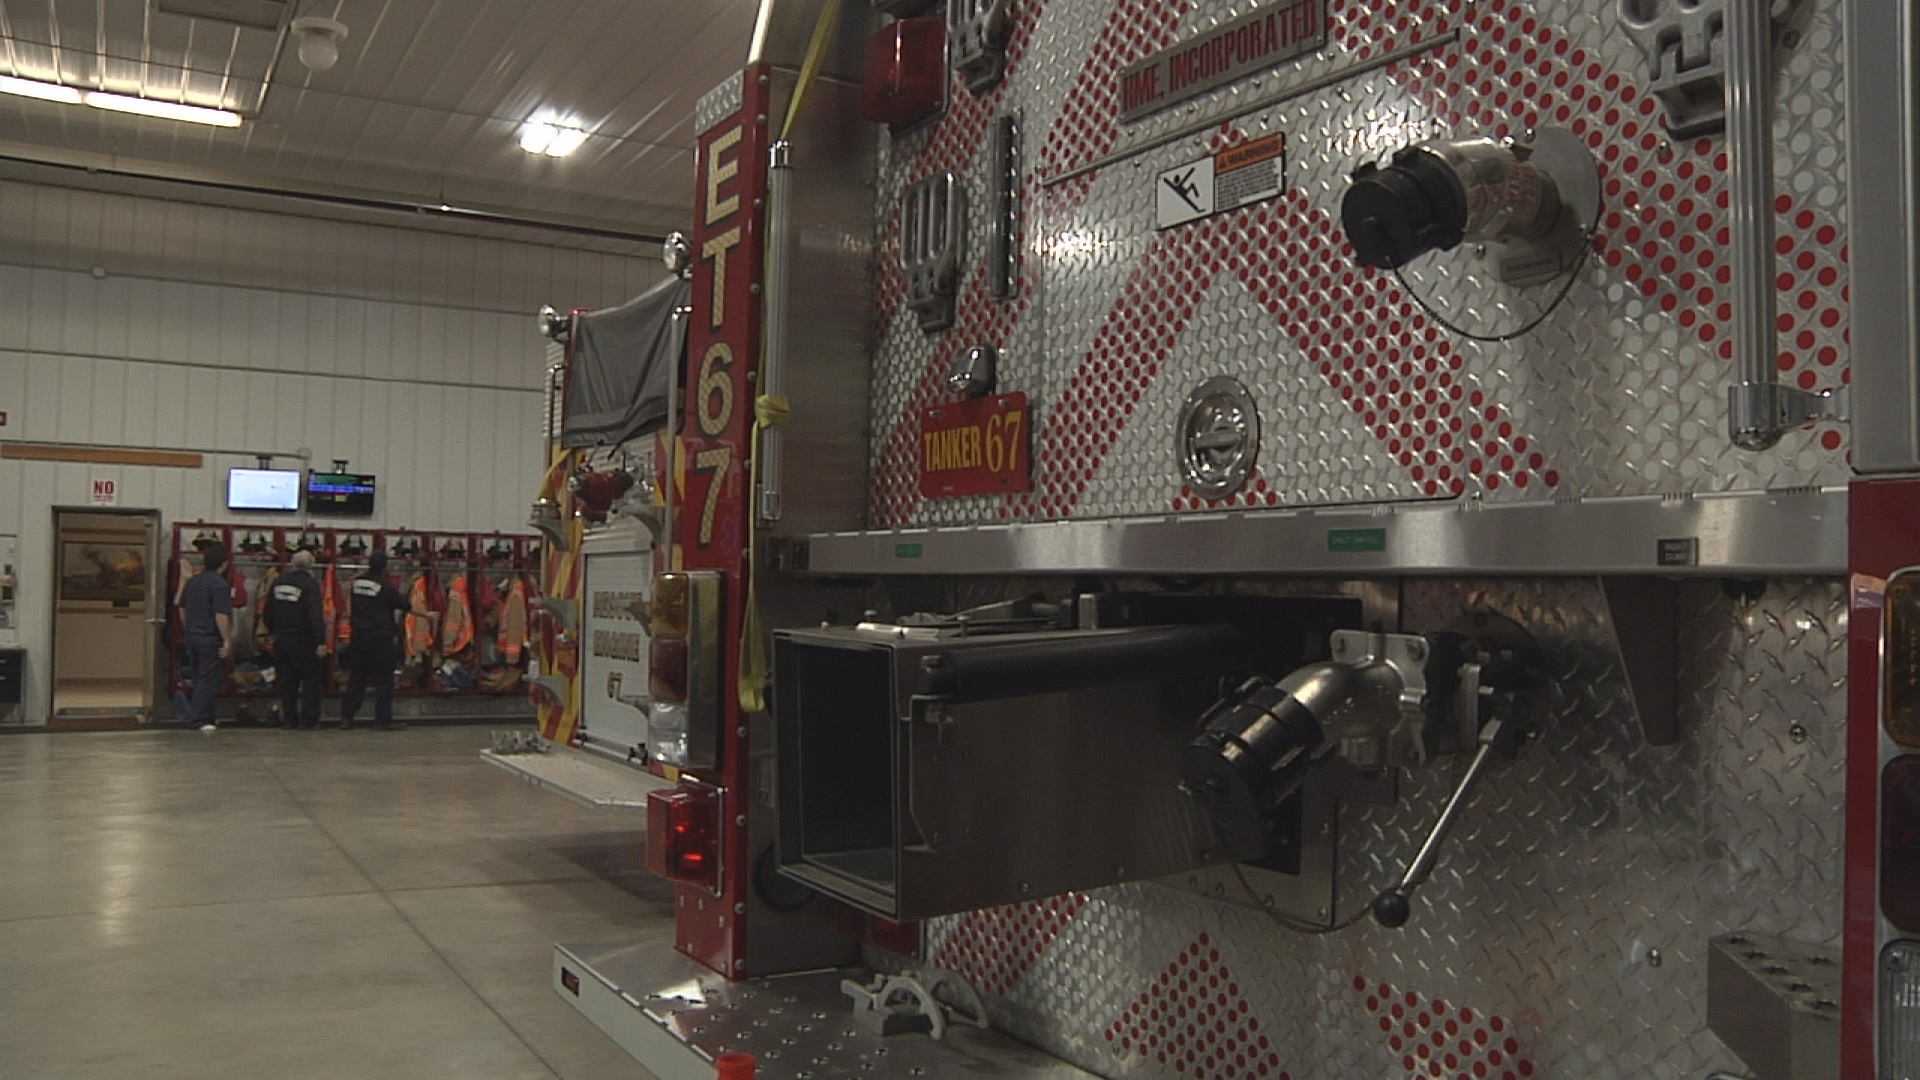 House Bill aims to provide tax break for volunteer firefighters